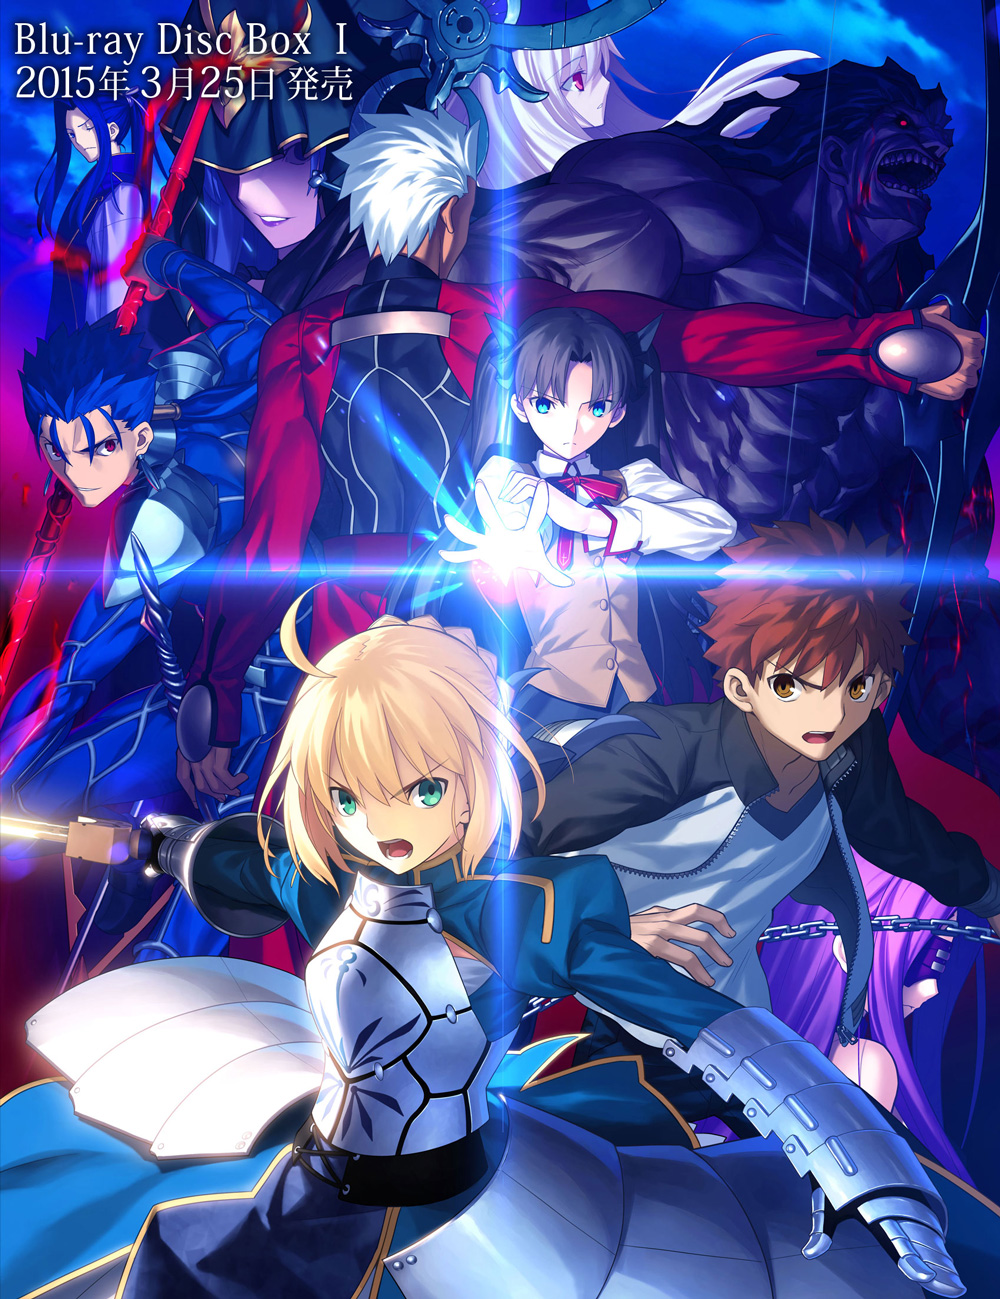 Fate-stay-night-Unlimited-Blade-Works-Blu-ray-Disc-Box-1-Visual